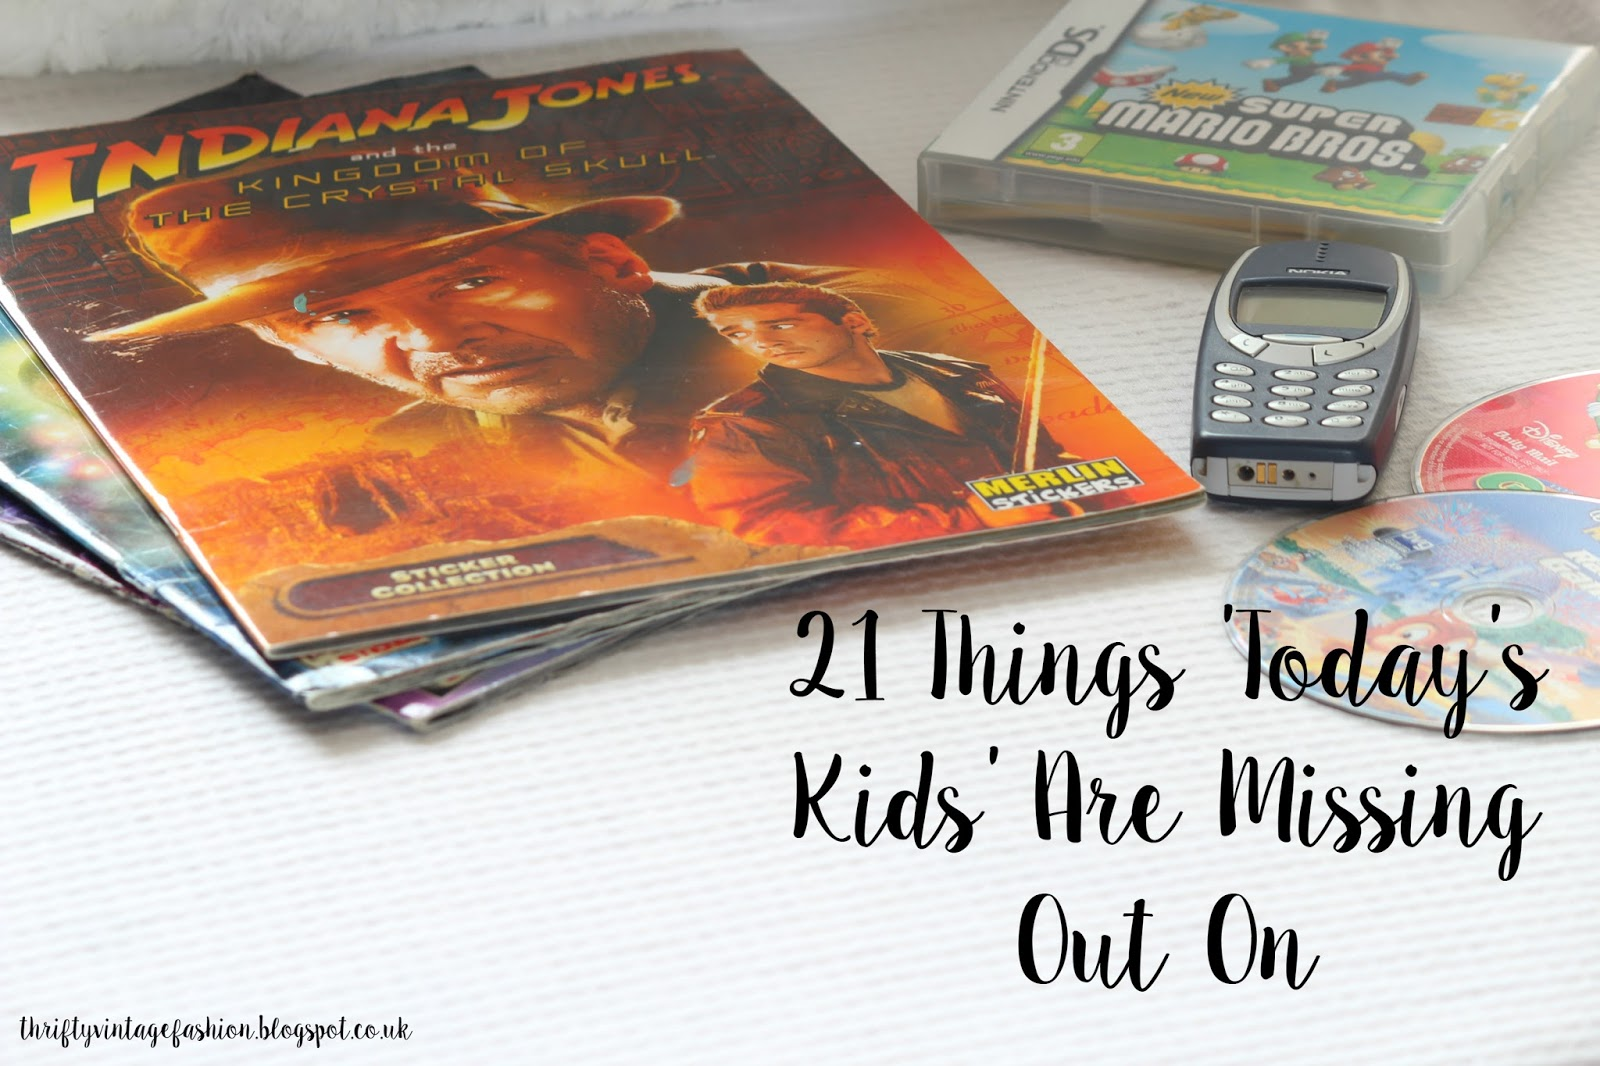 21 Things 'Today's Kids' Are Missing Out On lists Buzzfeed bloggger UK stickerbooks